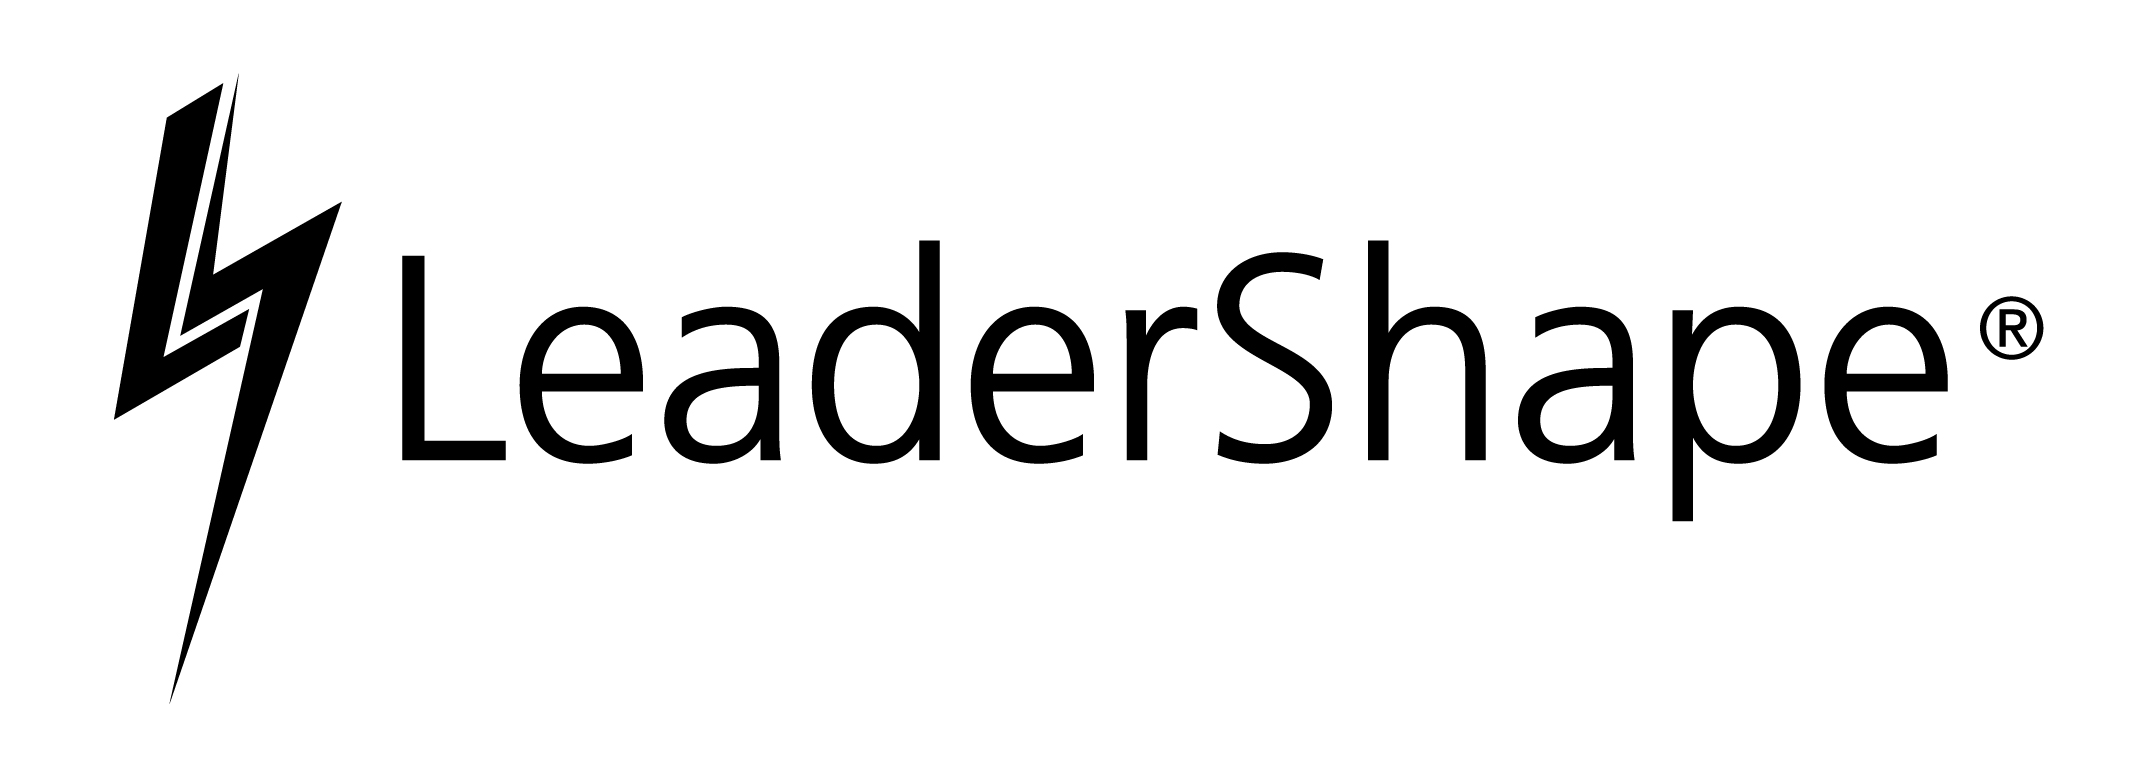 Leadershape Institute Graduate